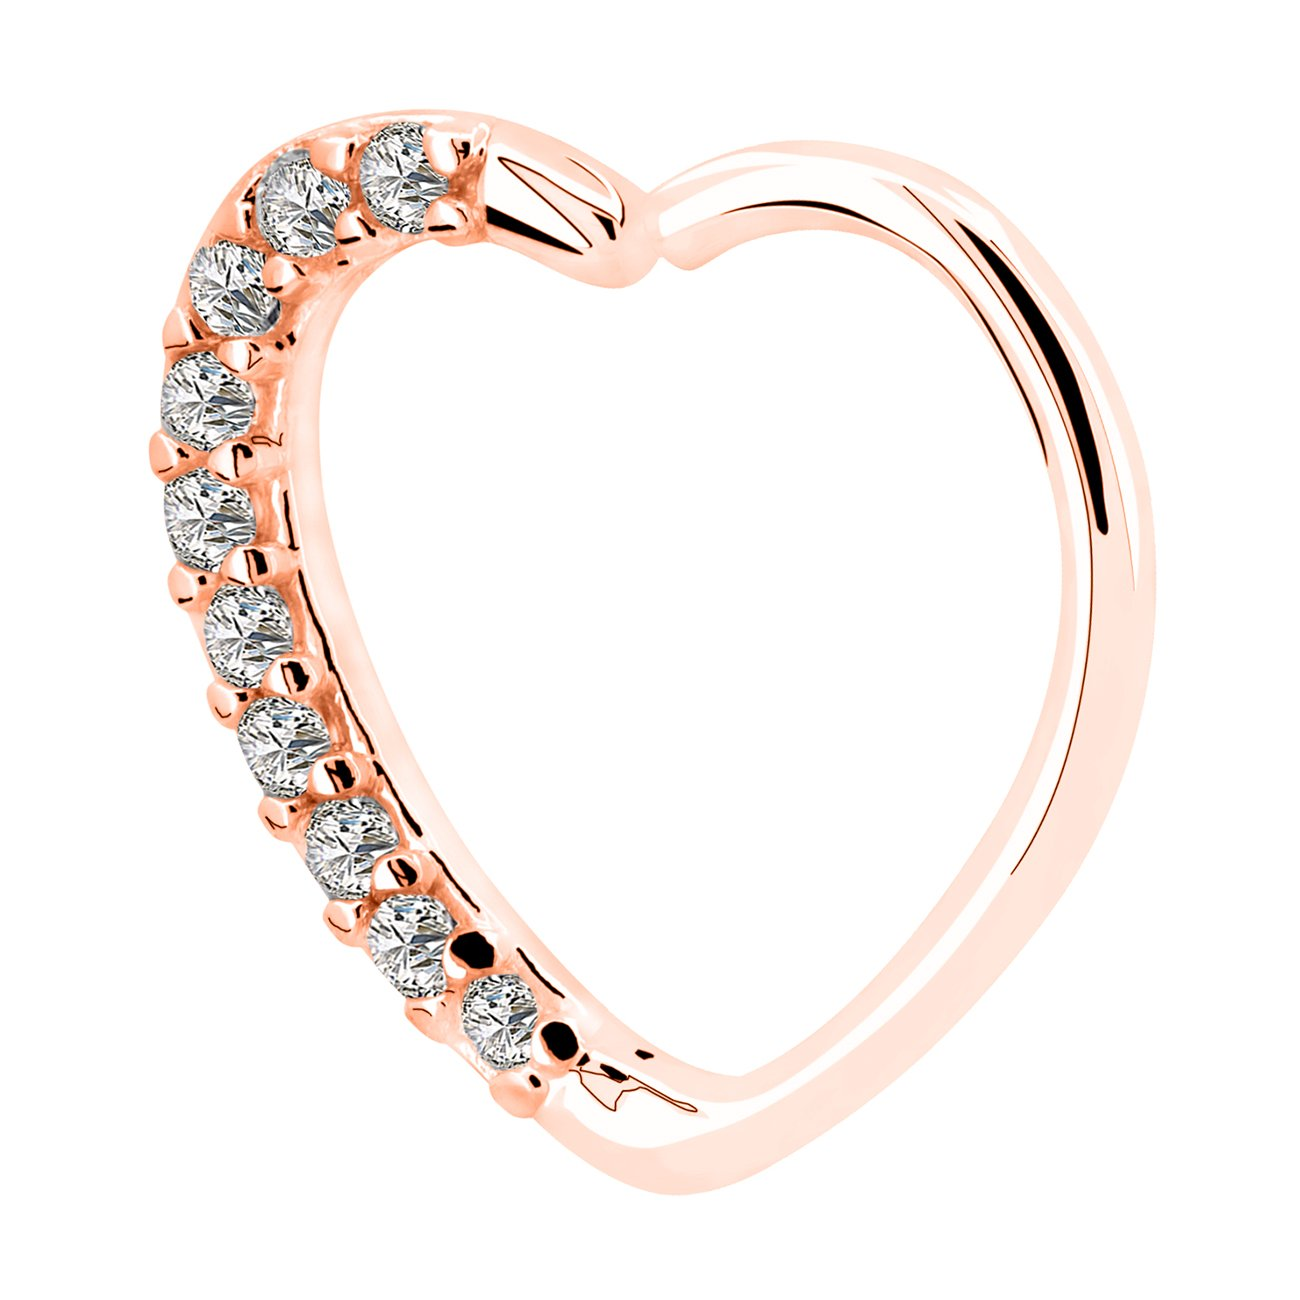 OUFER Body Piercing Jewelry Heart Sharped Right Closure Daith Cartilage Tragus Helix Earrings 16 Gauge (rose gold clear)